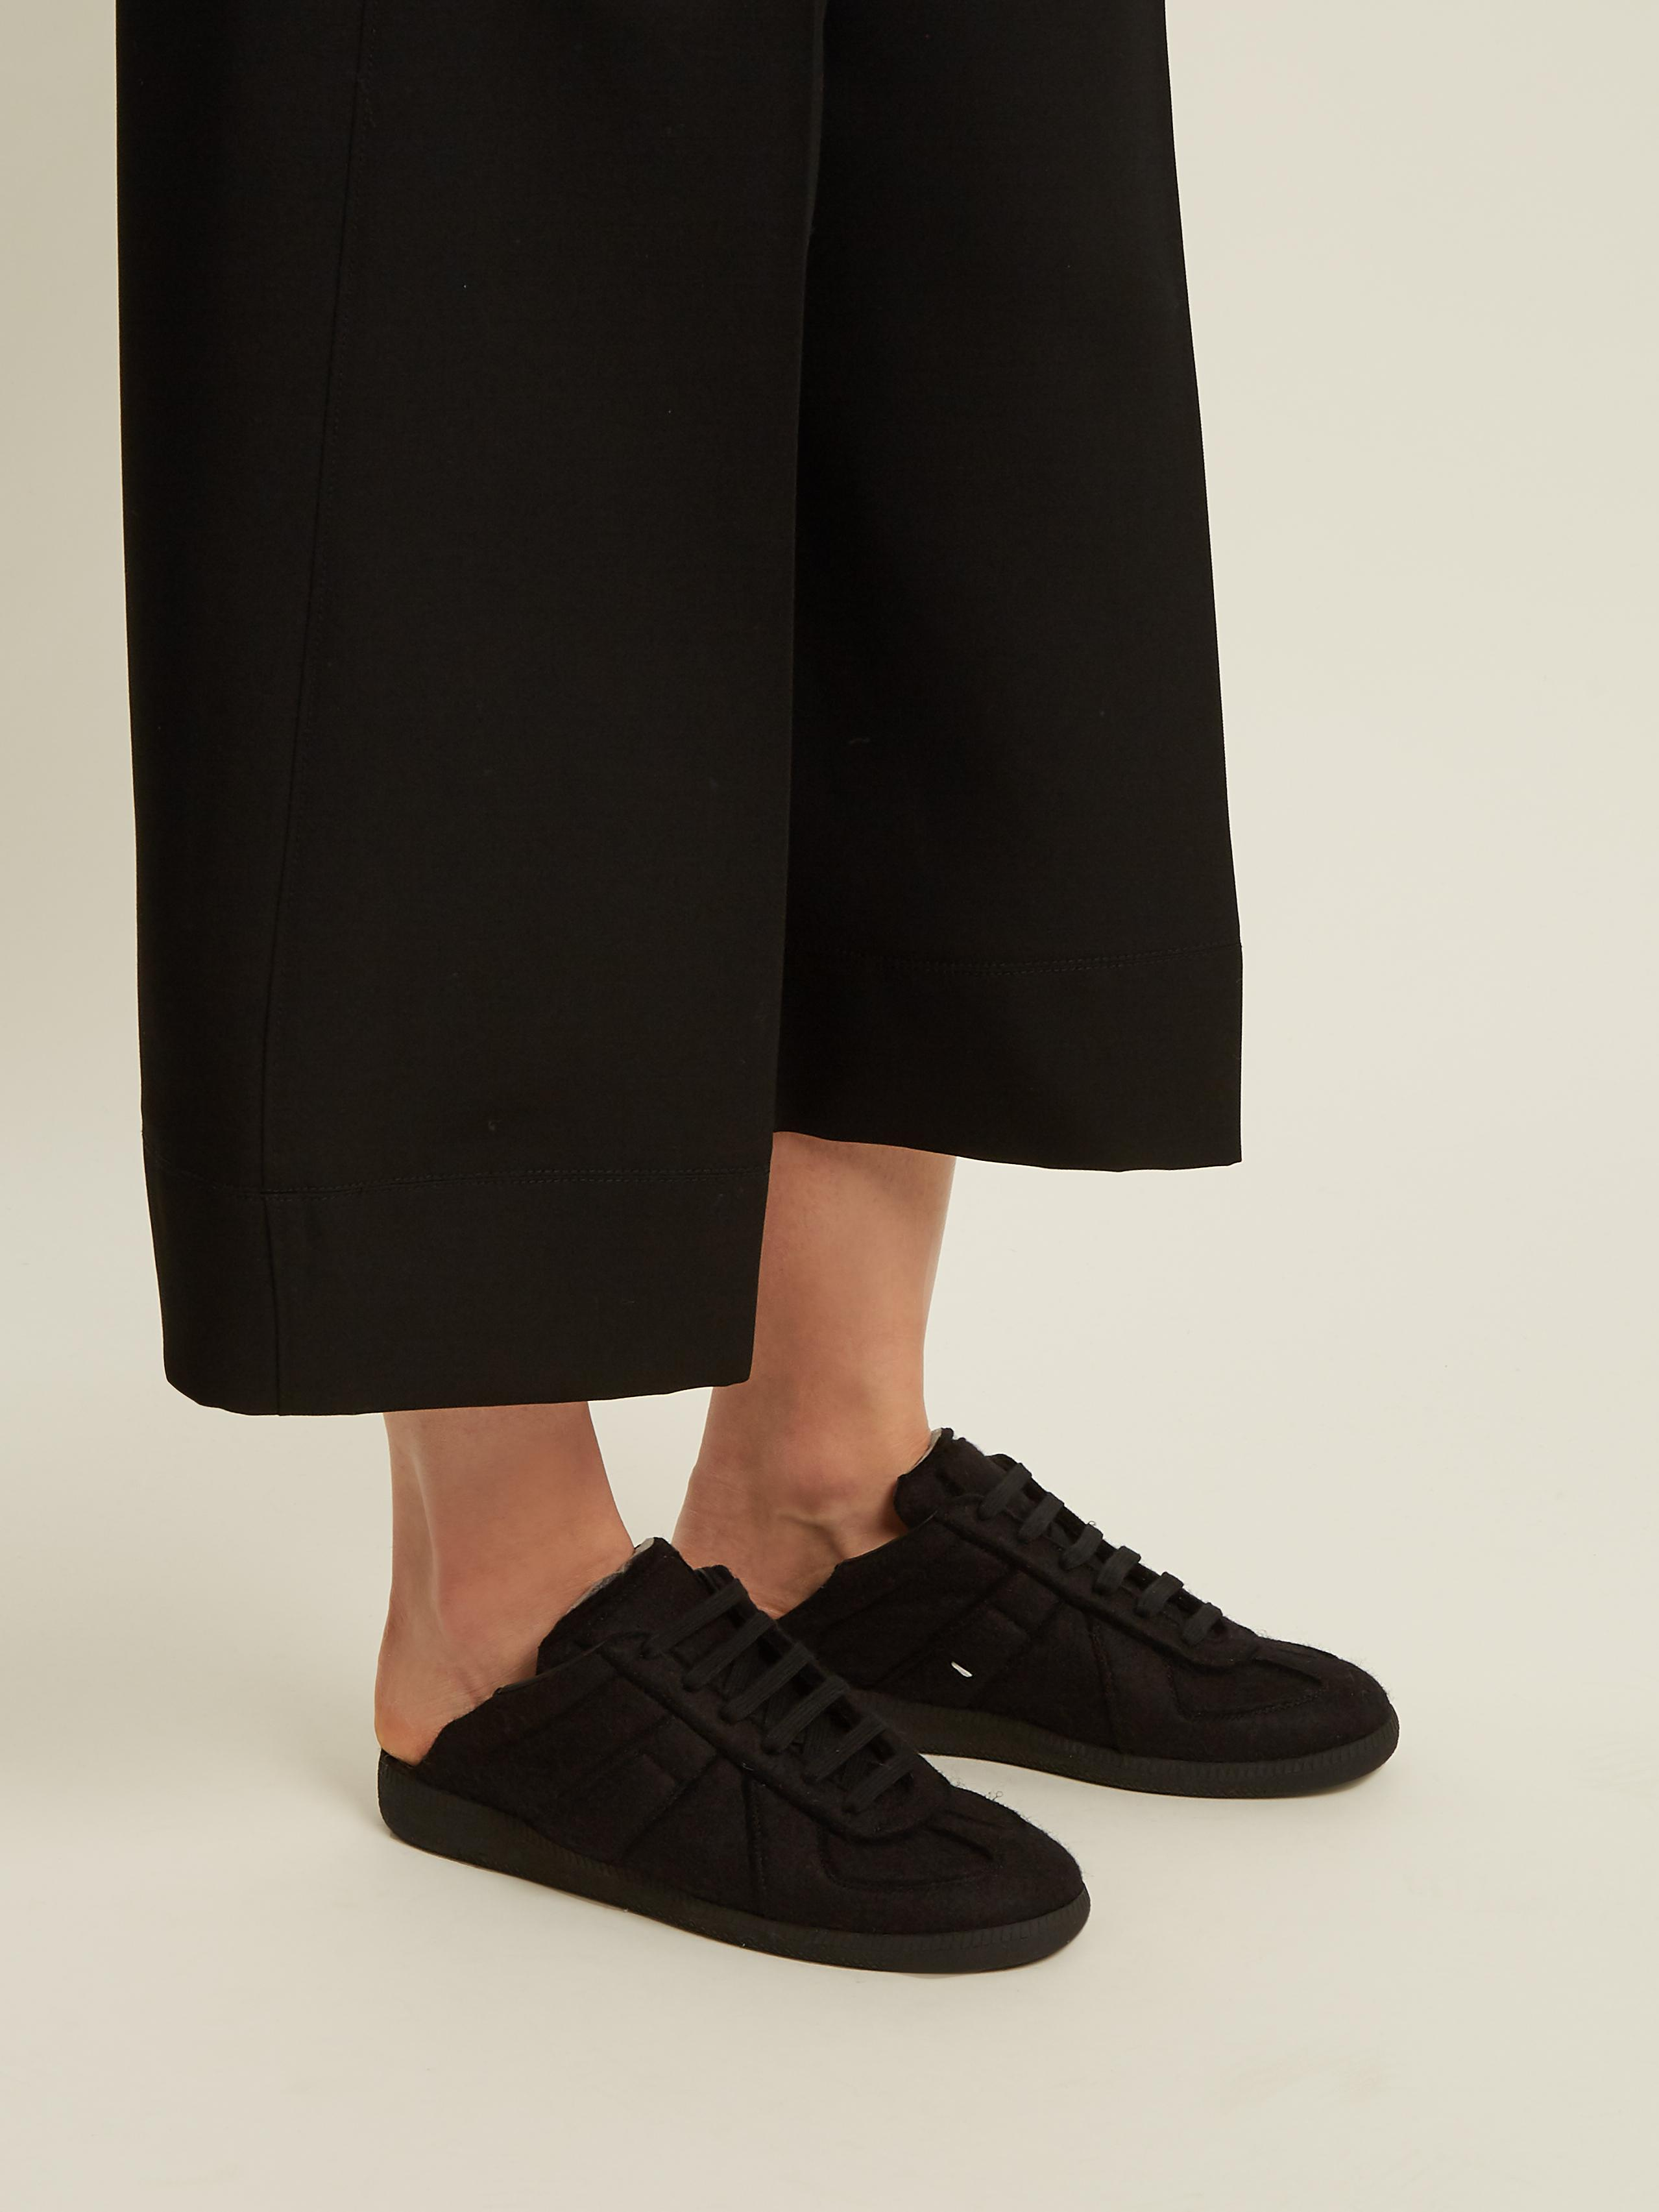 Maison Margiela Leather Replica Backless Trainers in Black